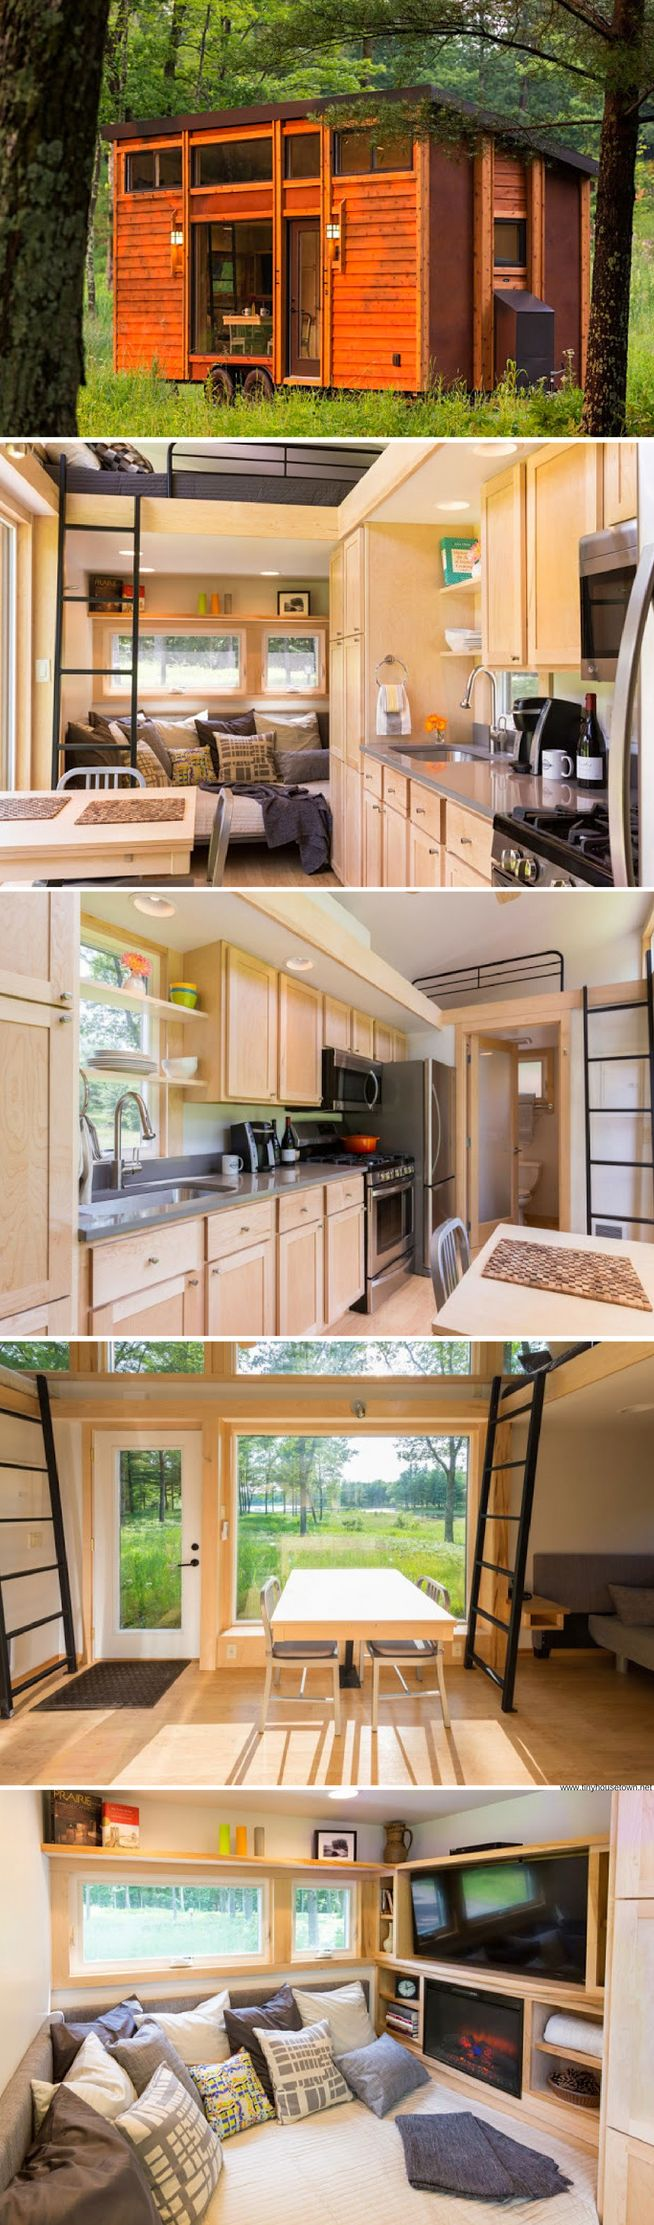 A beautiful 269 sq ft tiny house from escape homes livable shedslight